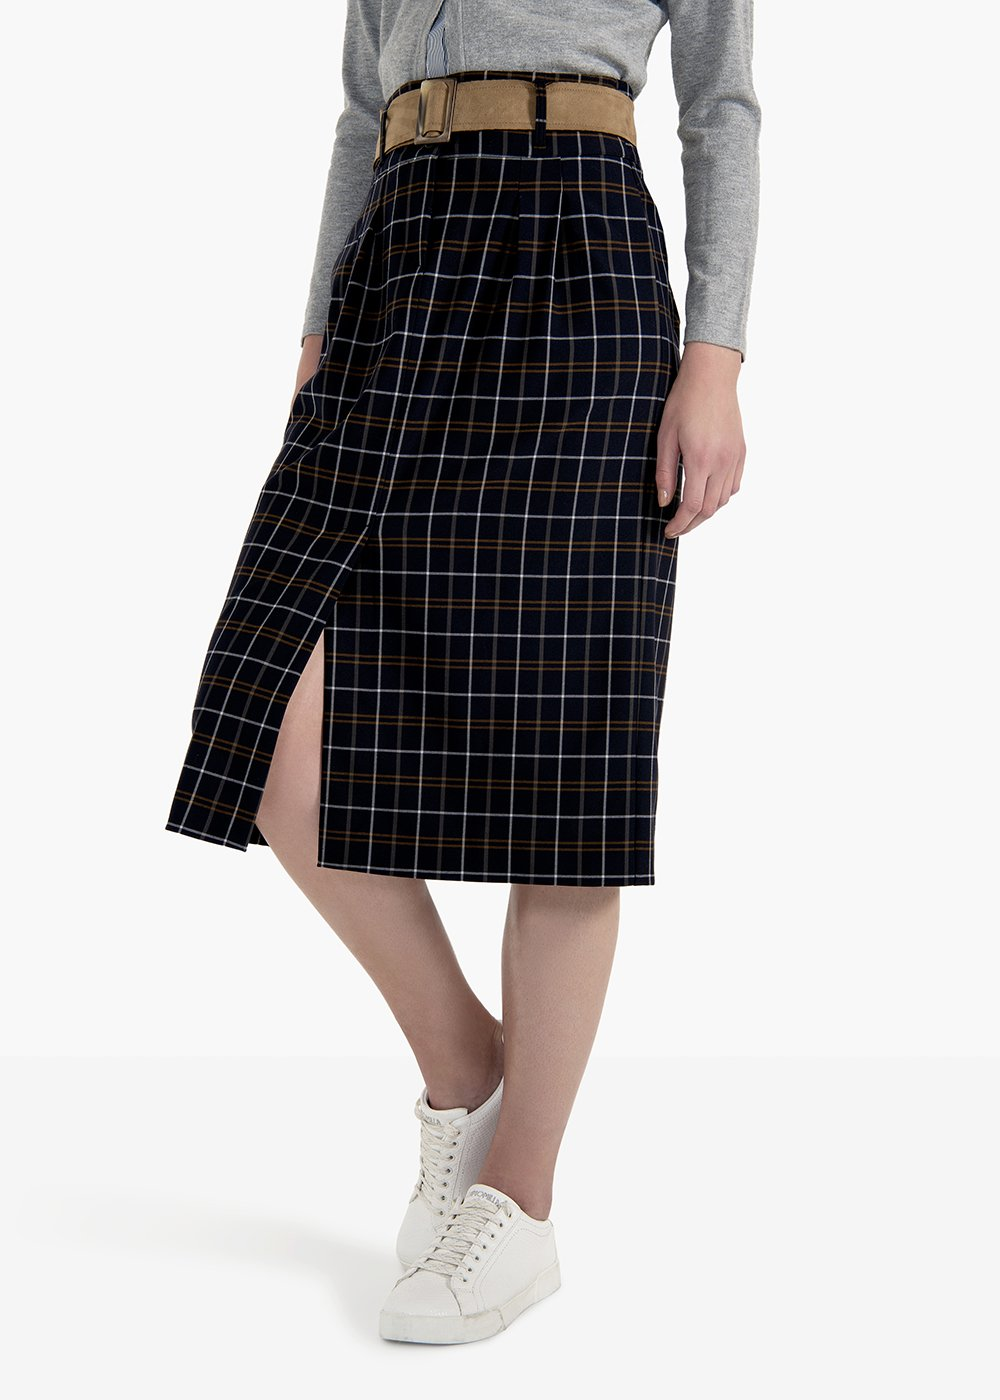 Gael skirt in A in polyviscose check pattern with belt - Tobacco /  BlackFantasia - Woman